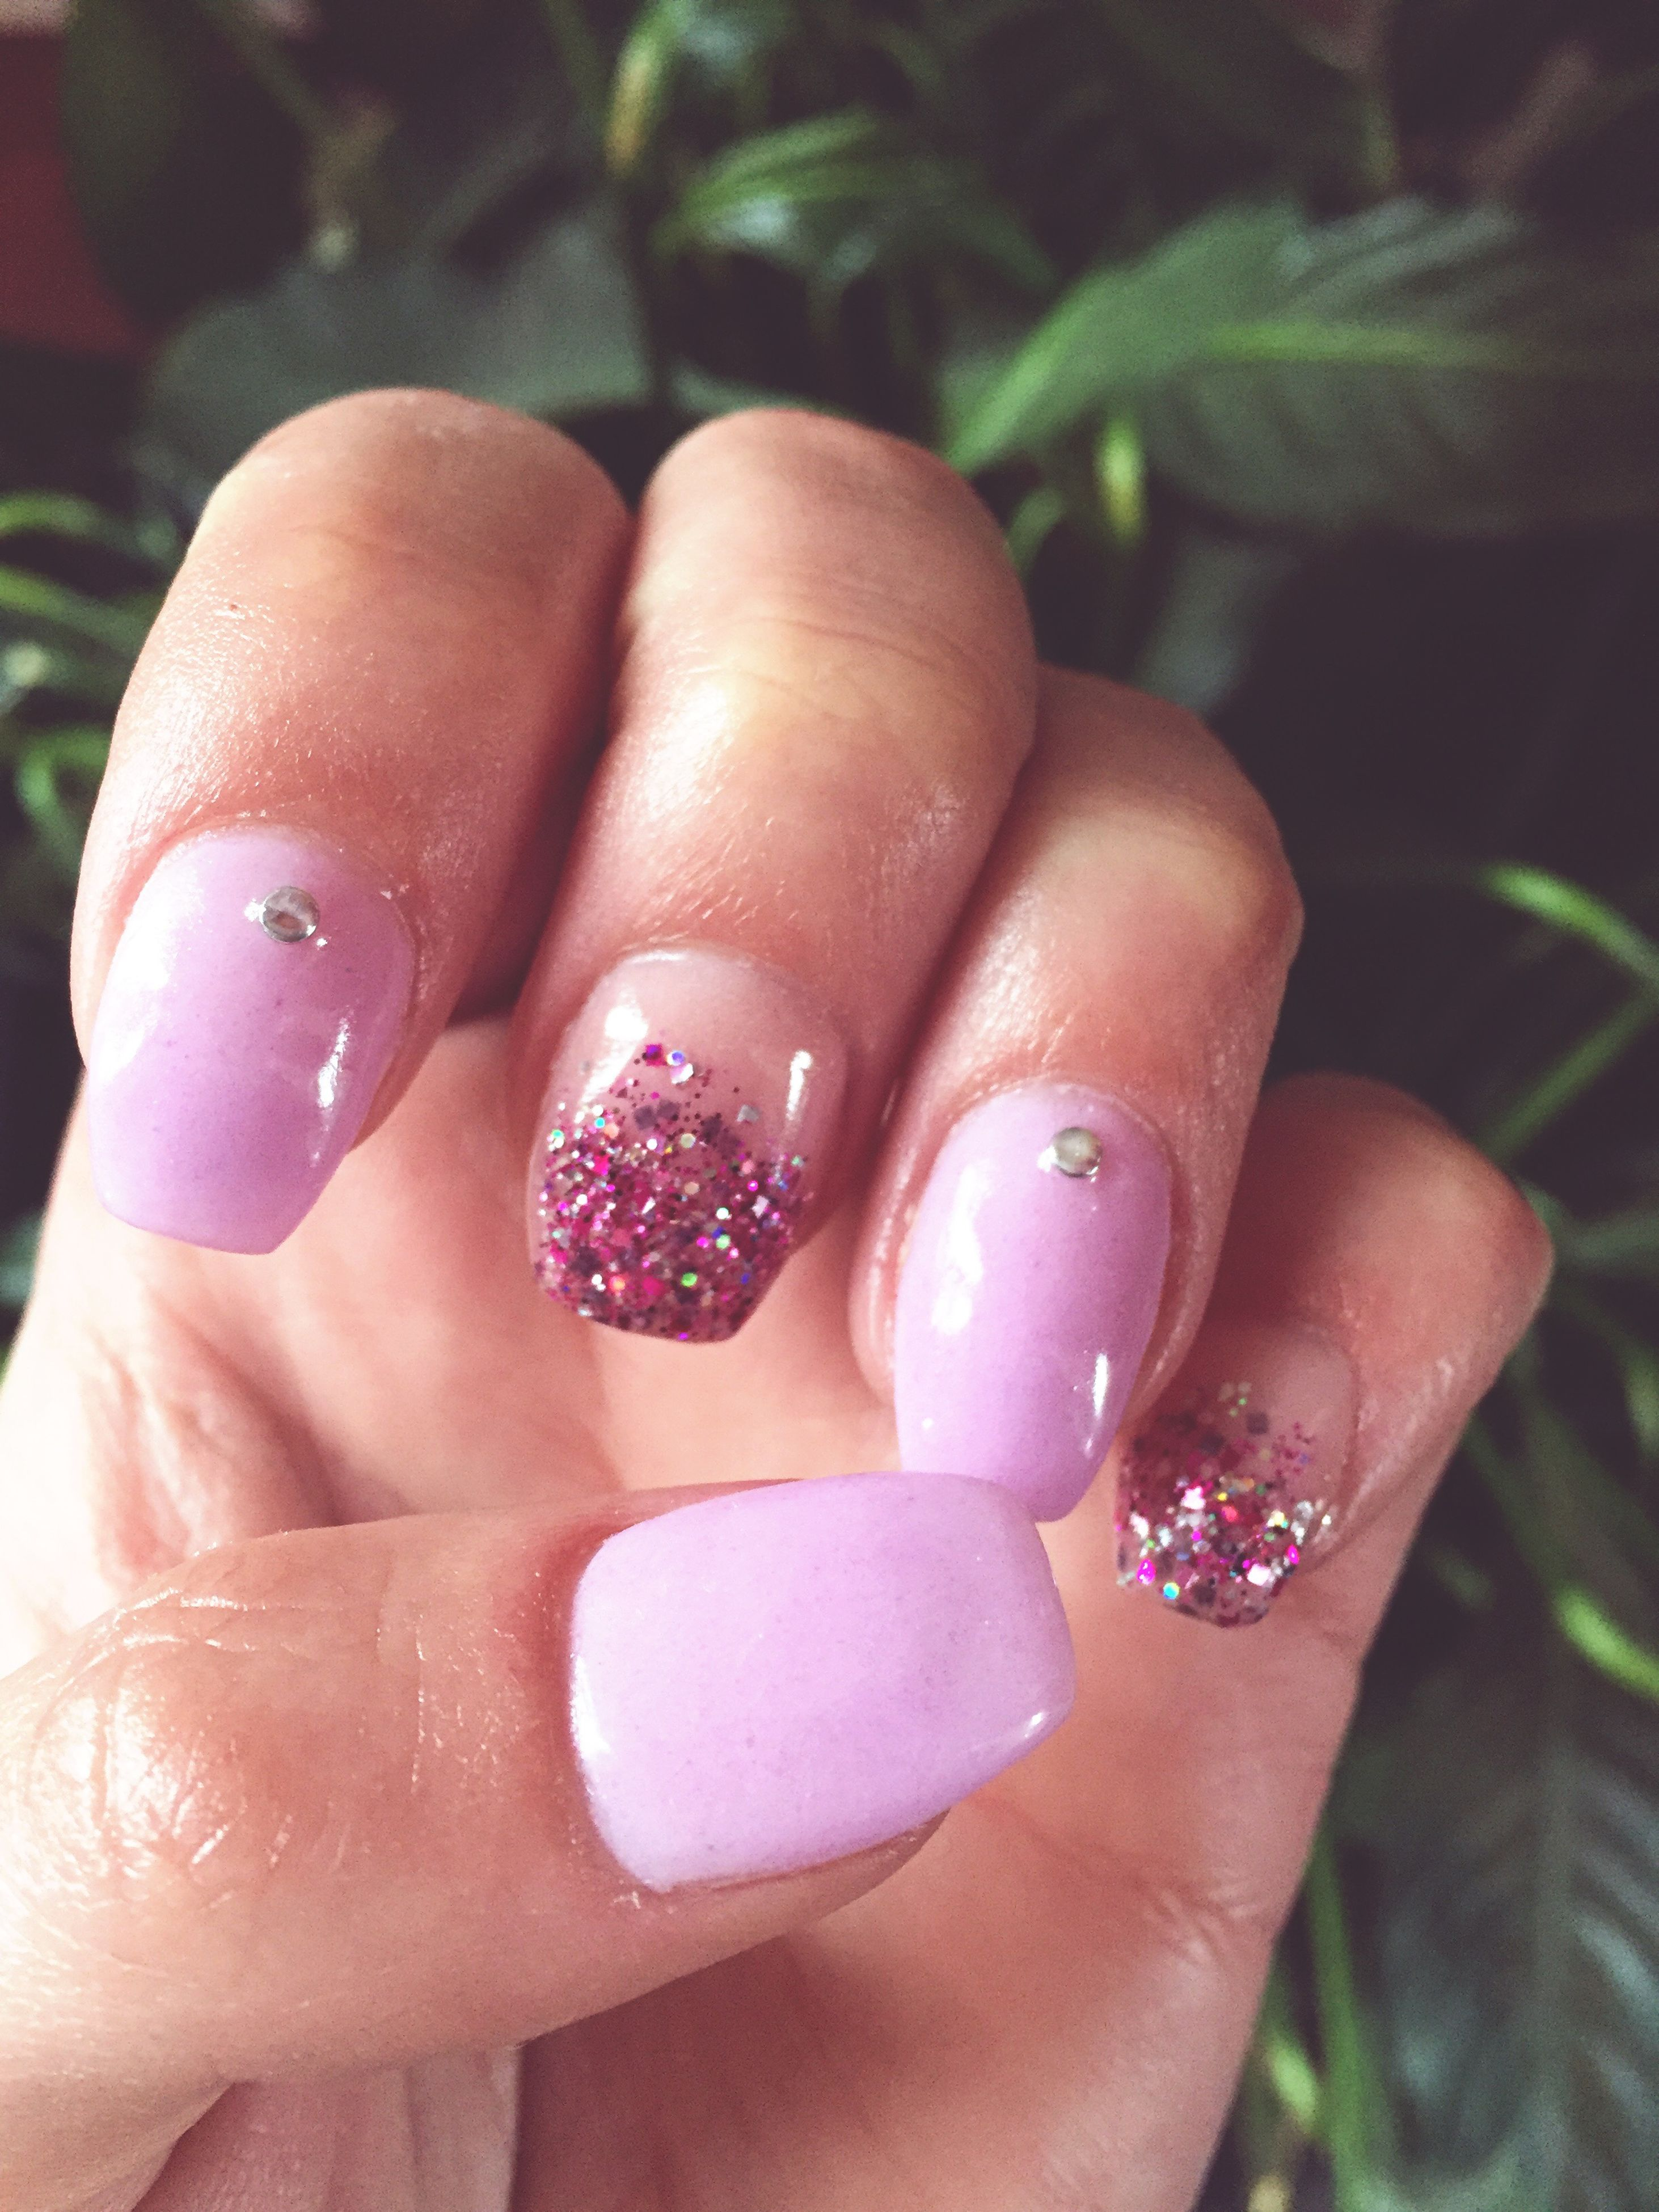 human hand, human body part, human finger, one person, close-up, nail art, fingernail, nail polish, one woman only, real people, only women, adults only, people, adult, day, outdoors